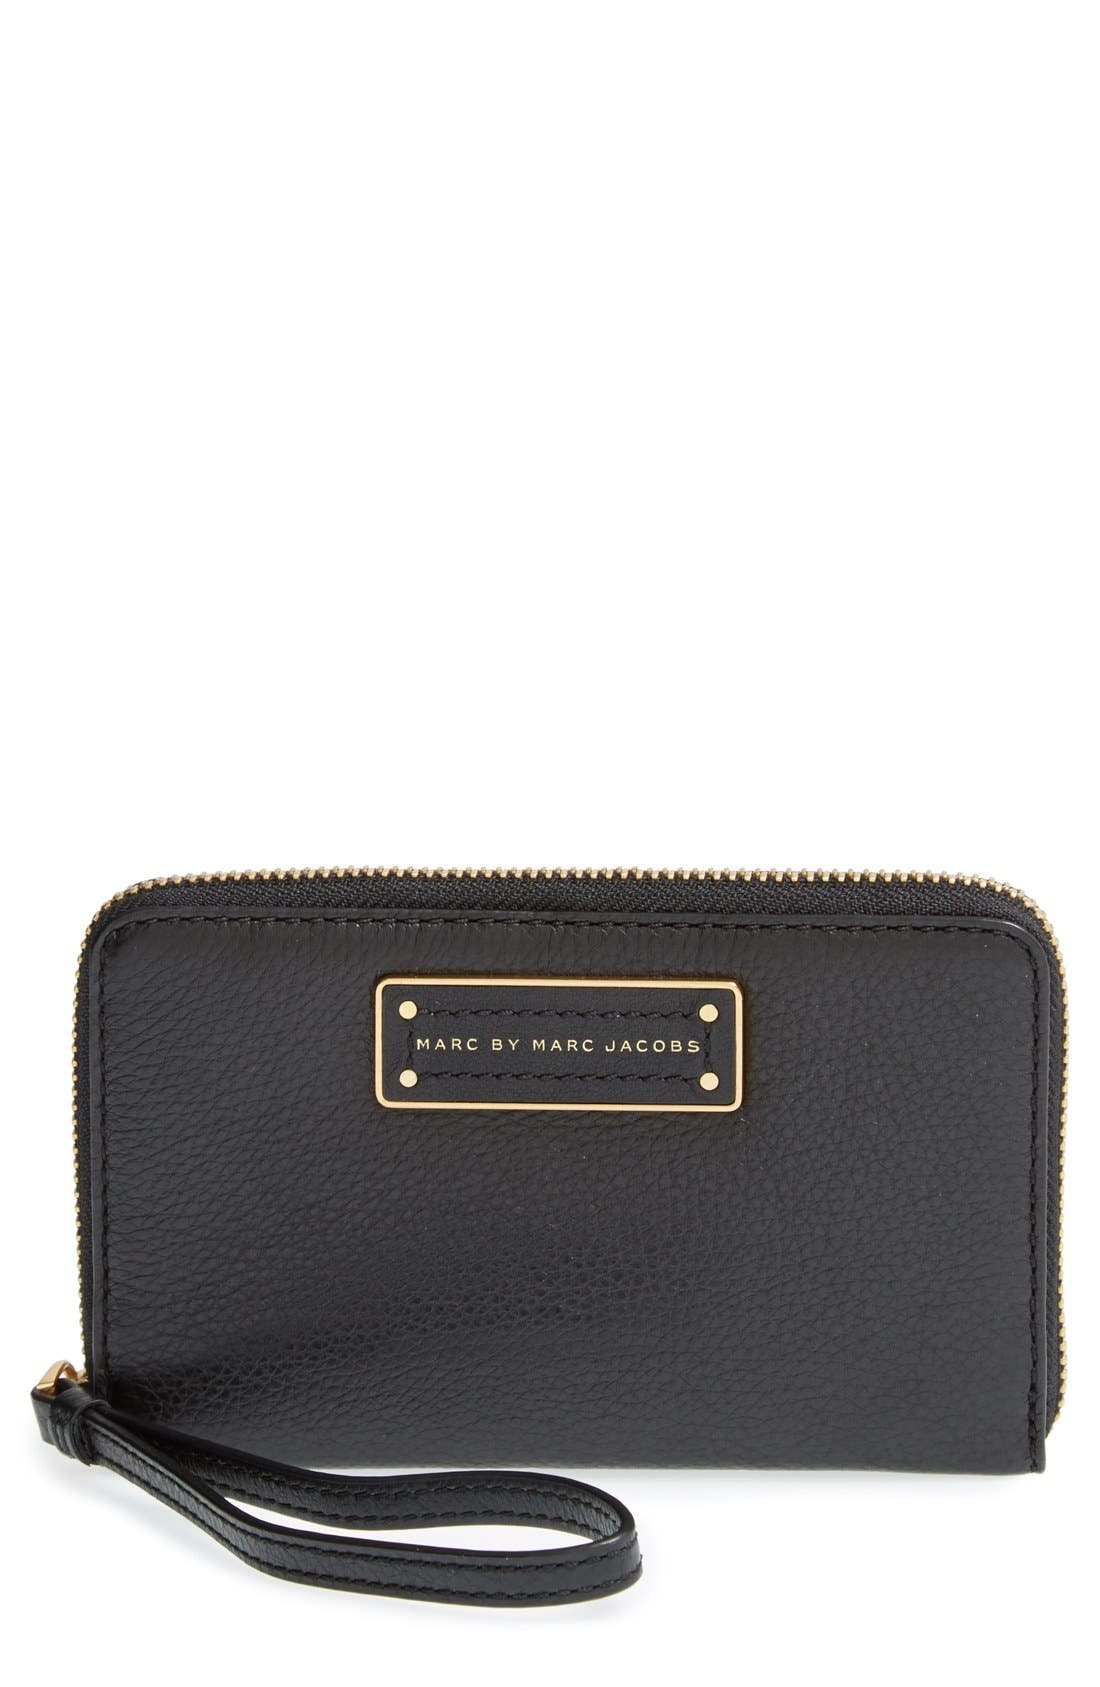 MARC JACOBS,                             MARC BY MARC JACOBS 'Too Hot To Handle - Wingman' Wallet Wristlet,                             Main thumbnail 1, color,                             001